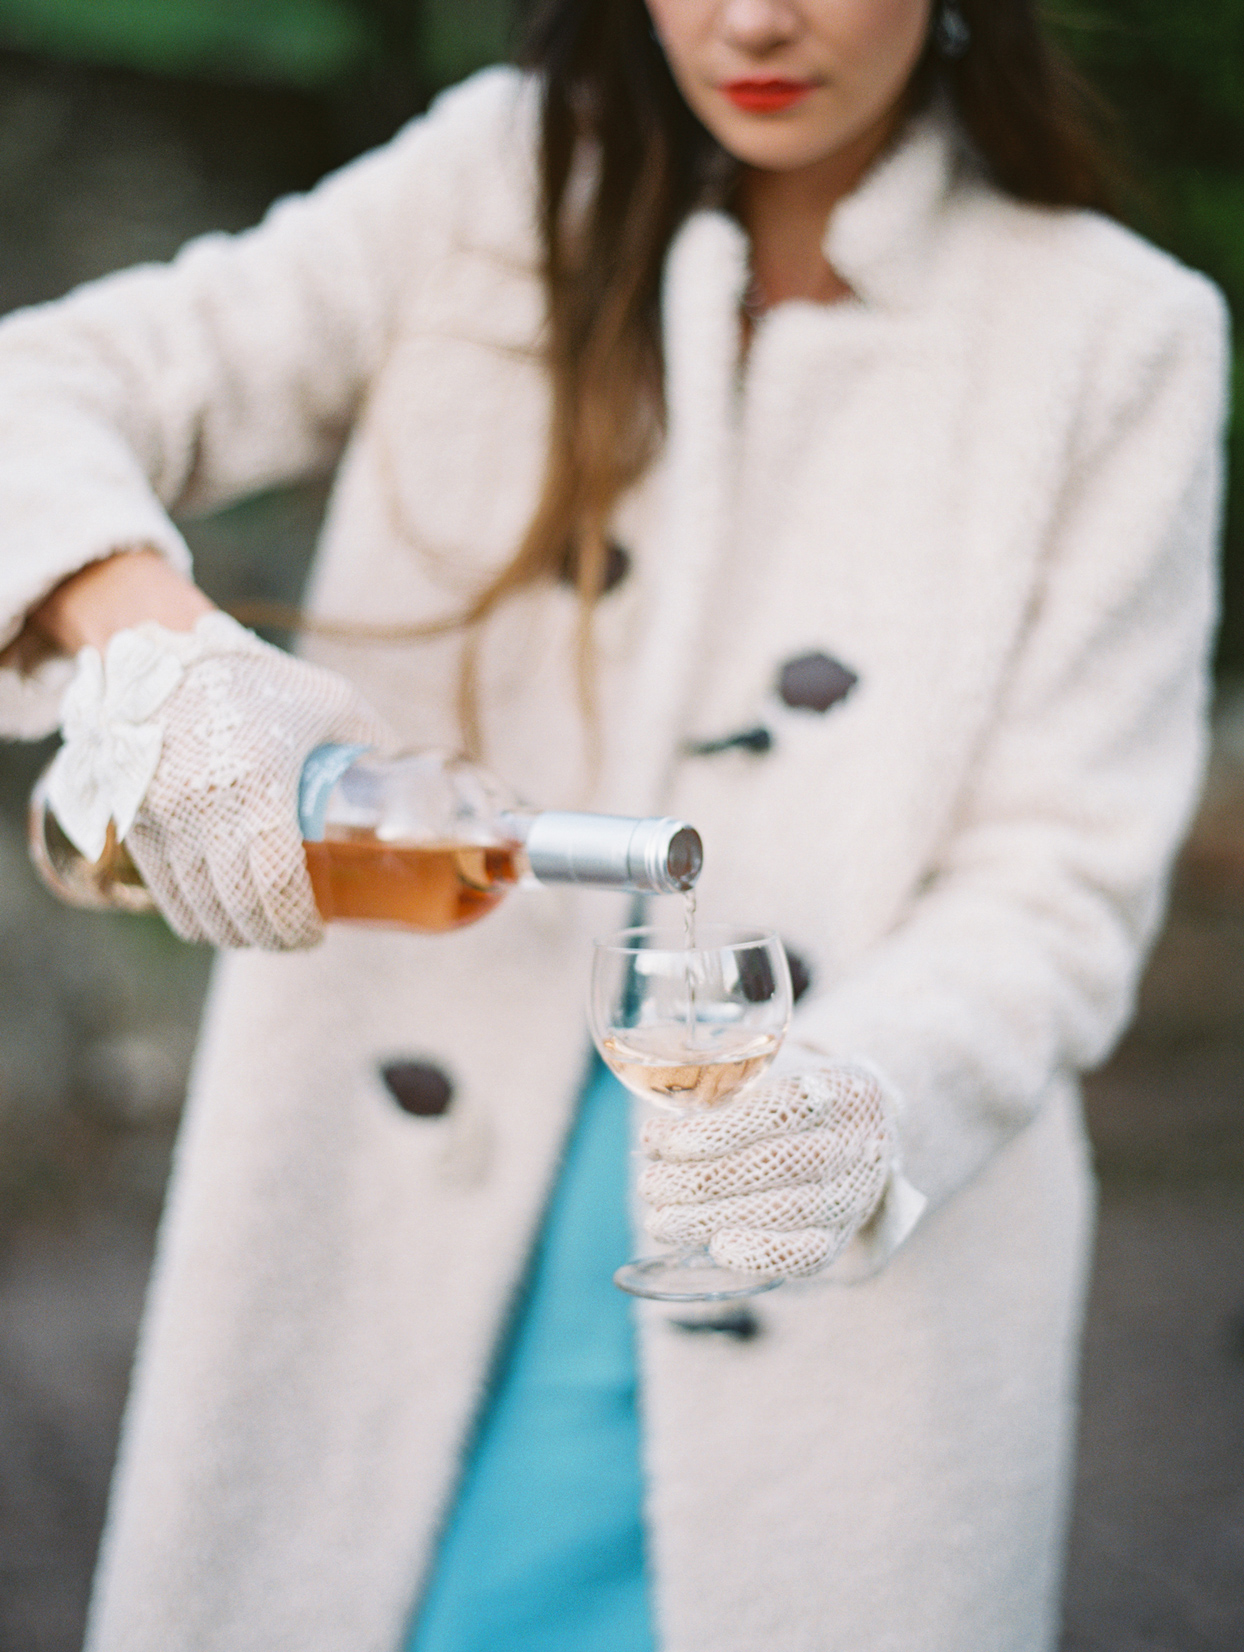 woman wearing white gloves pouring glass of wine